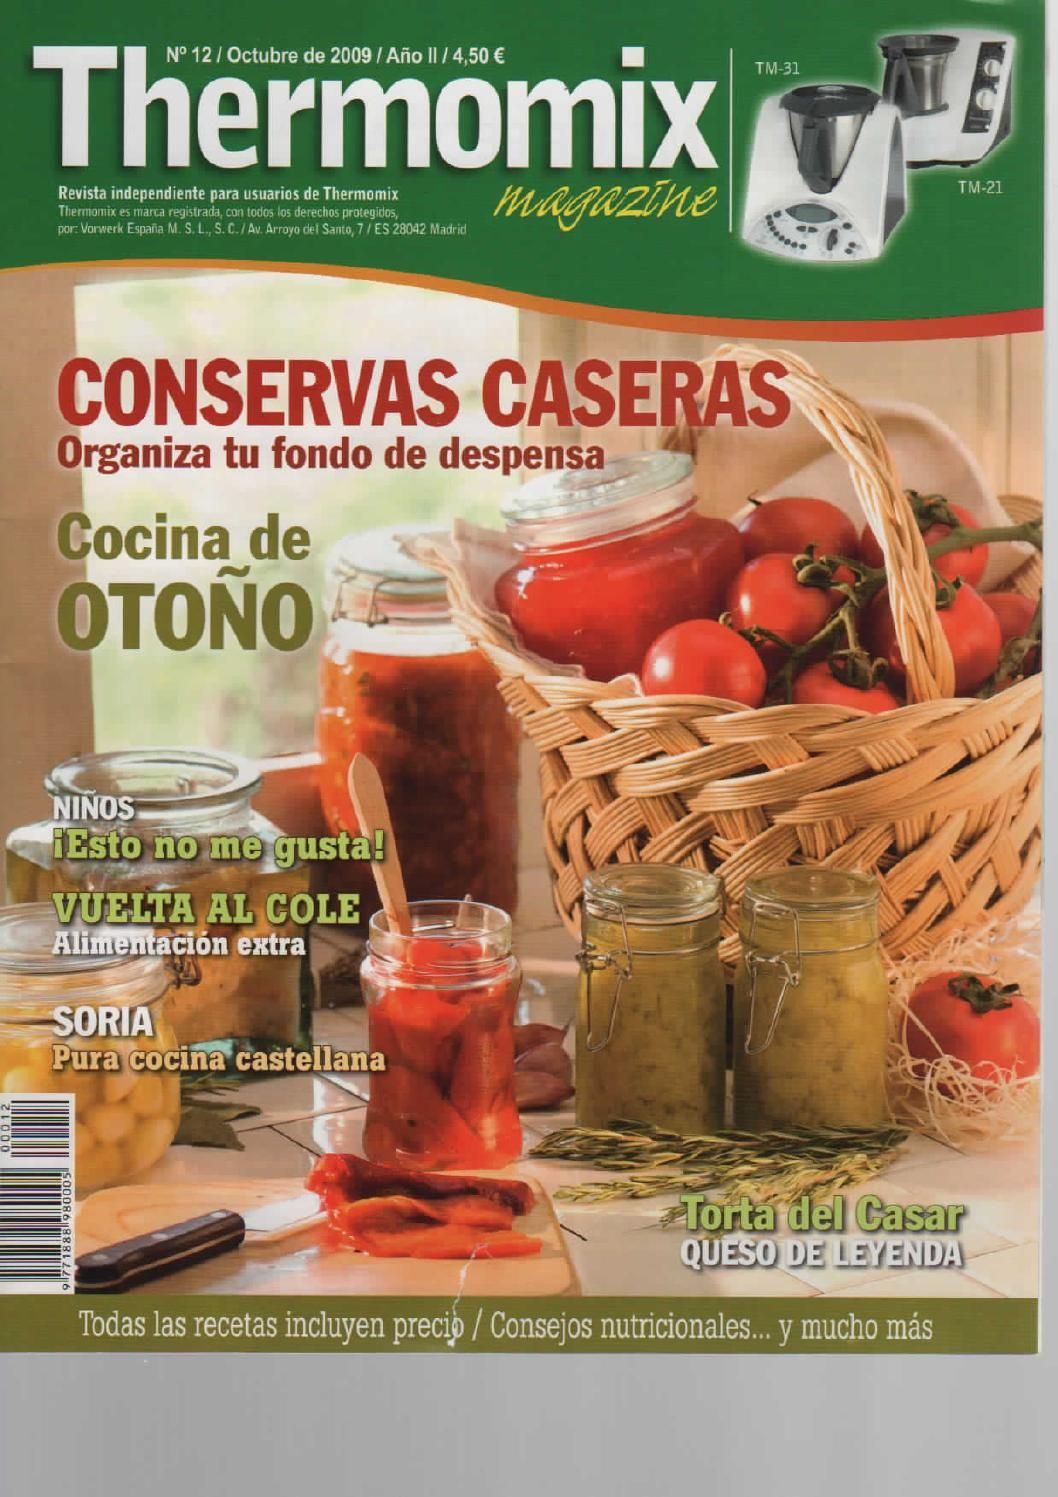 Libros Thermomix Issuu Revista Thermomix Nº12 Conservas Caseras De Argent